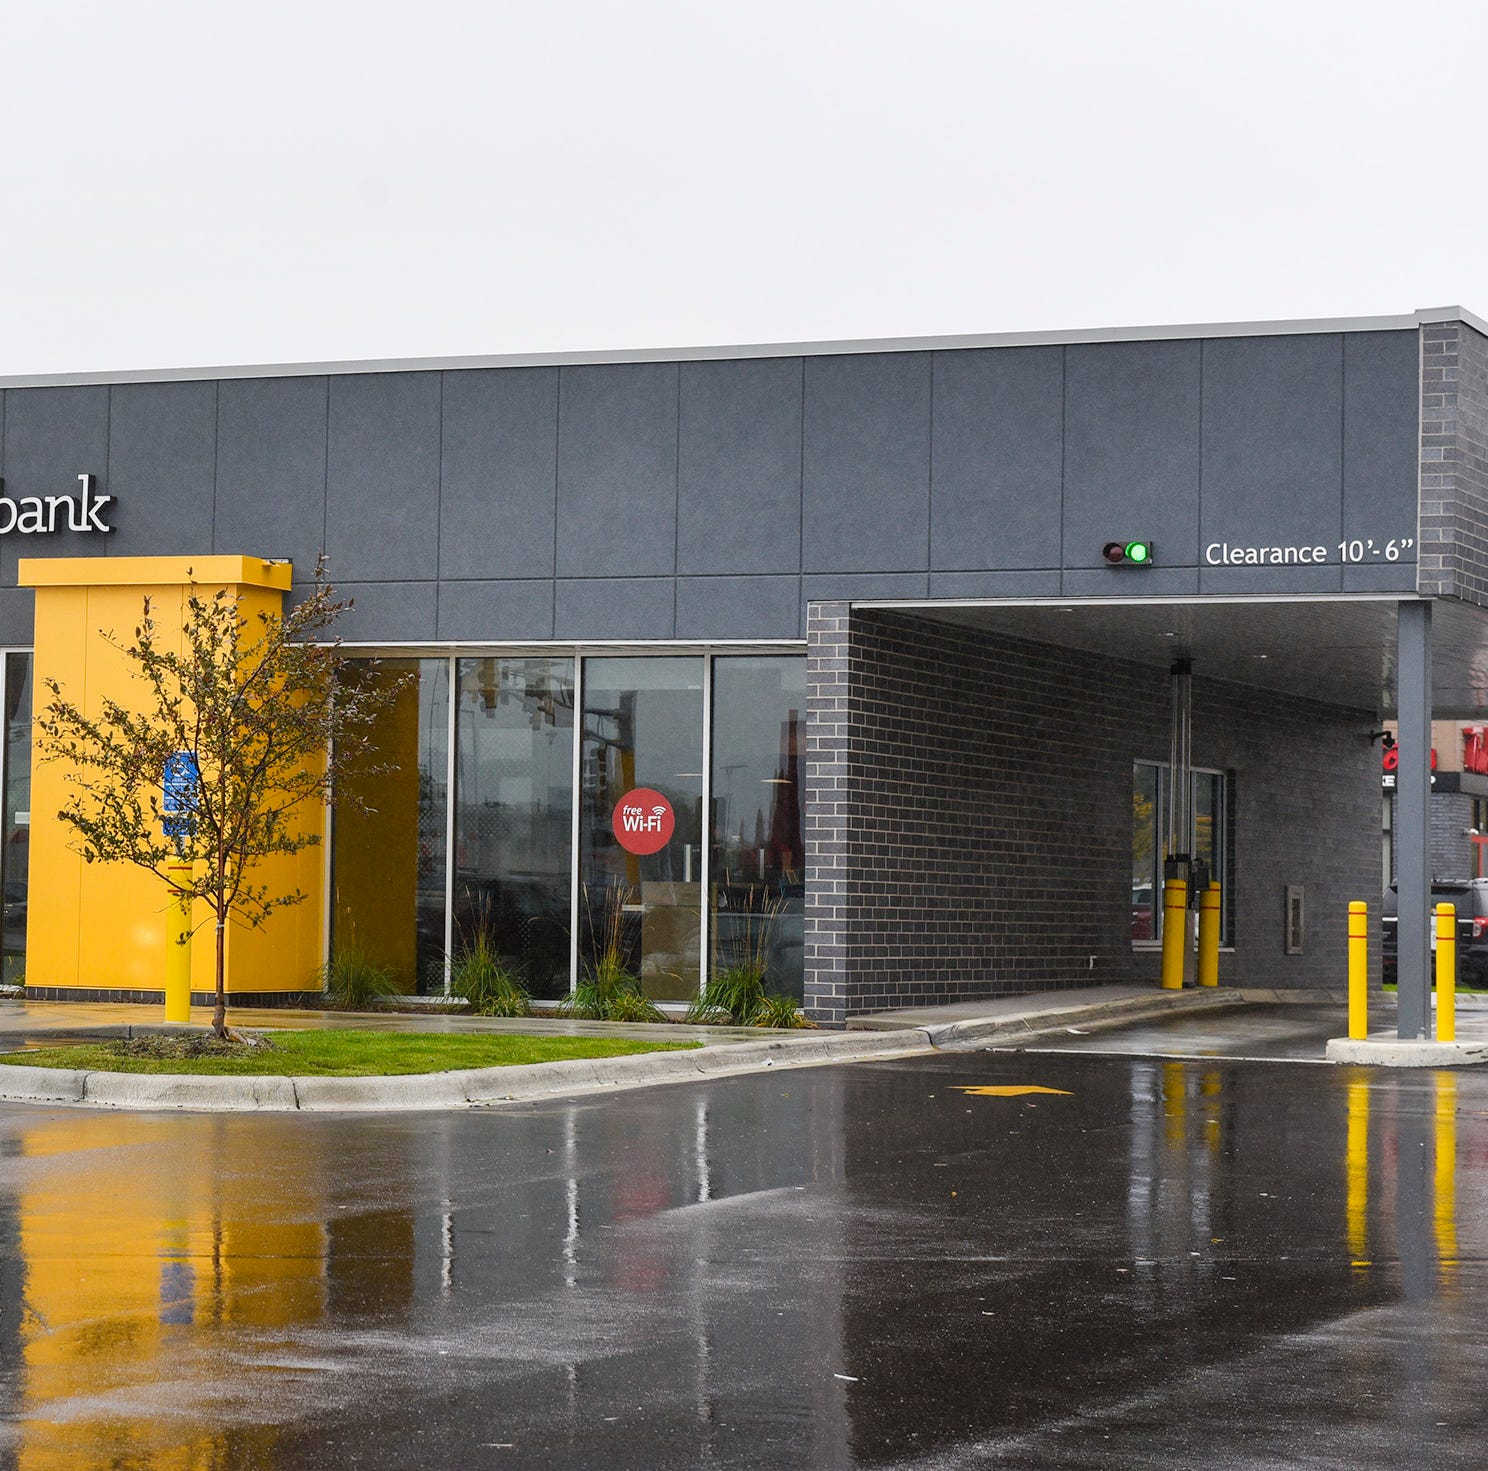 TCF Bank to close branch location inside St. Cloud Cash Wise store